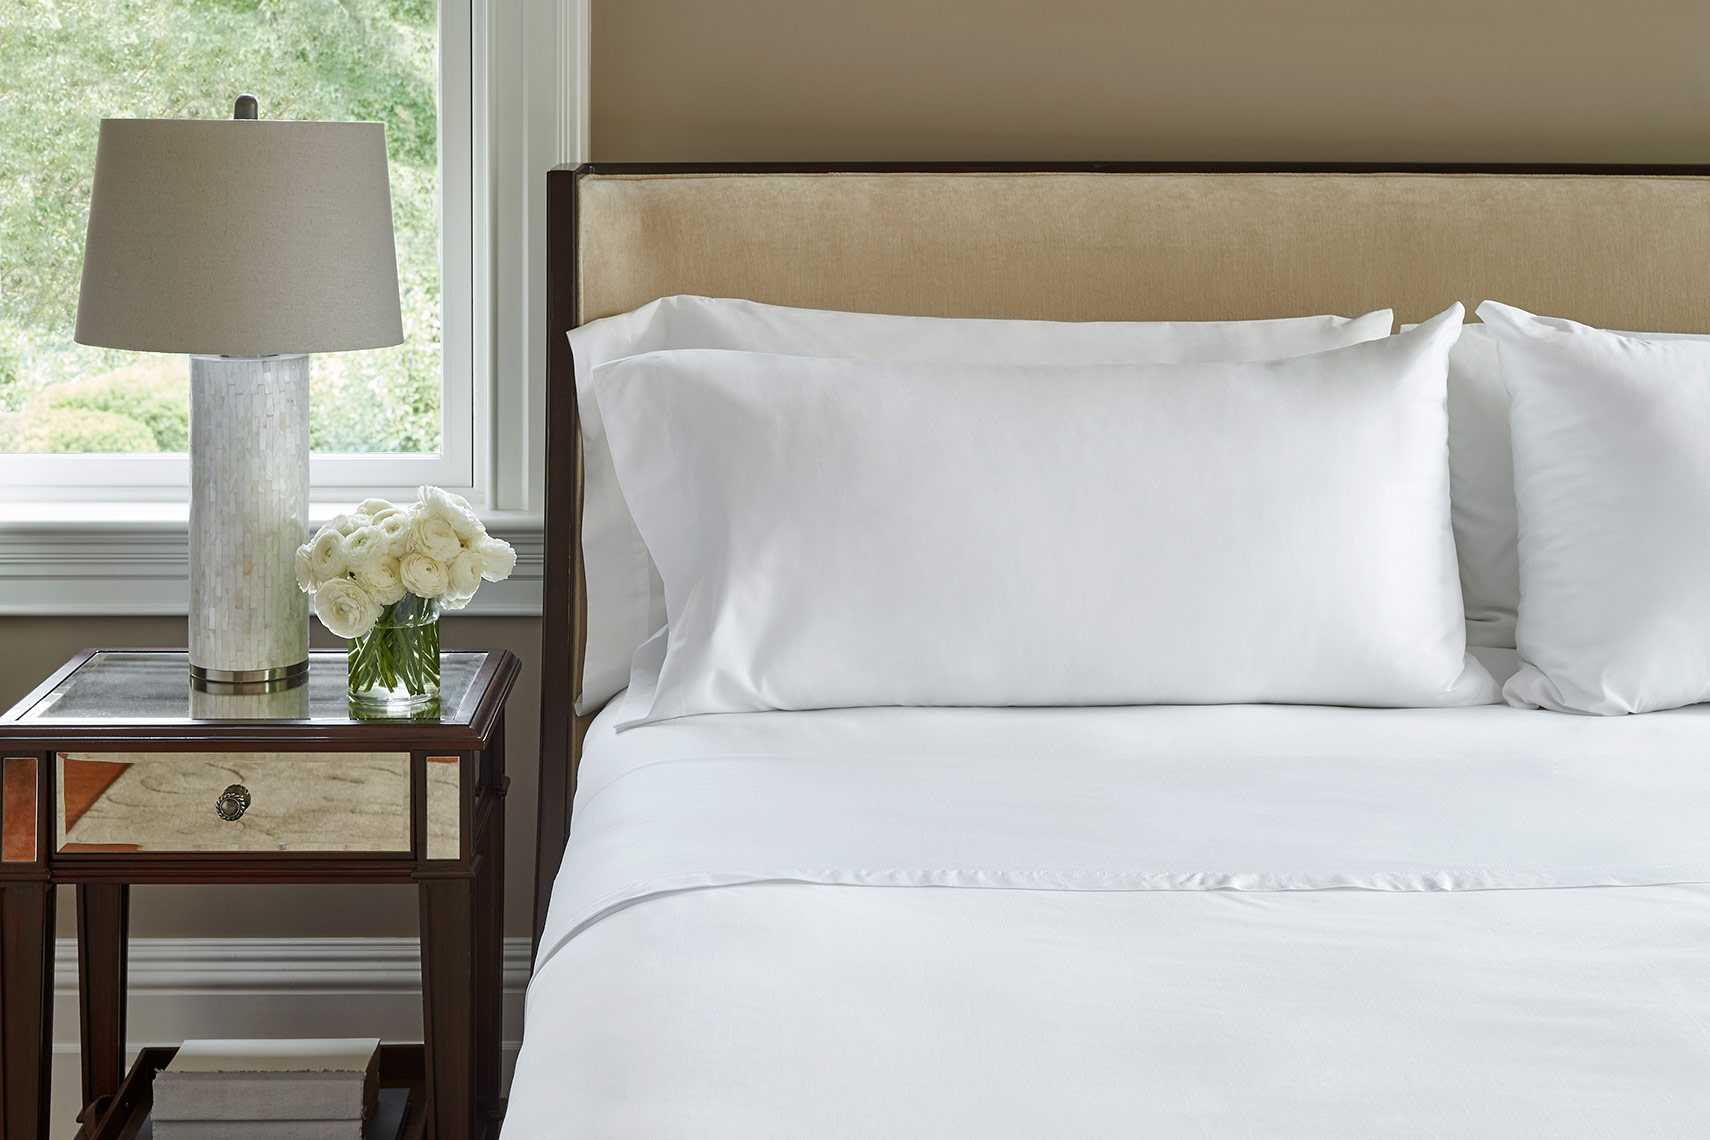 HOTELS-ShopJW25-Hotel-Pillowcases